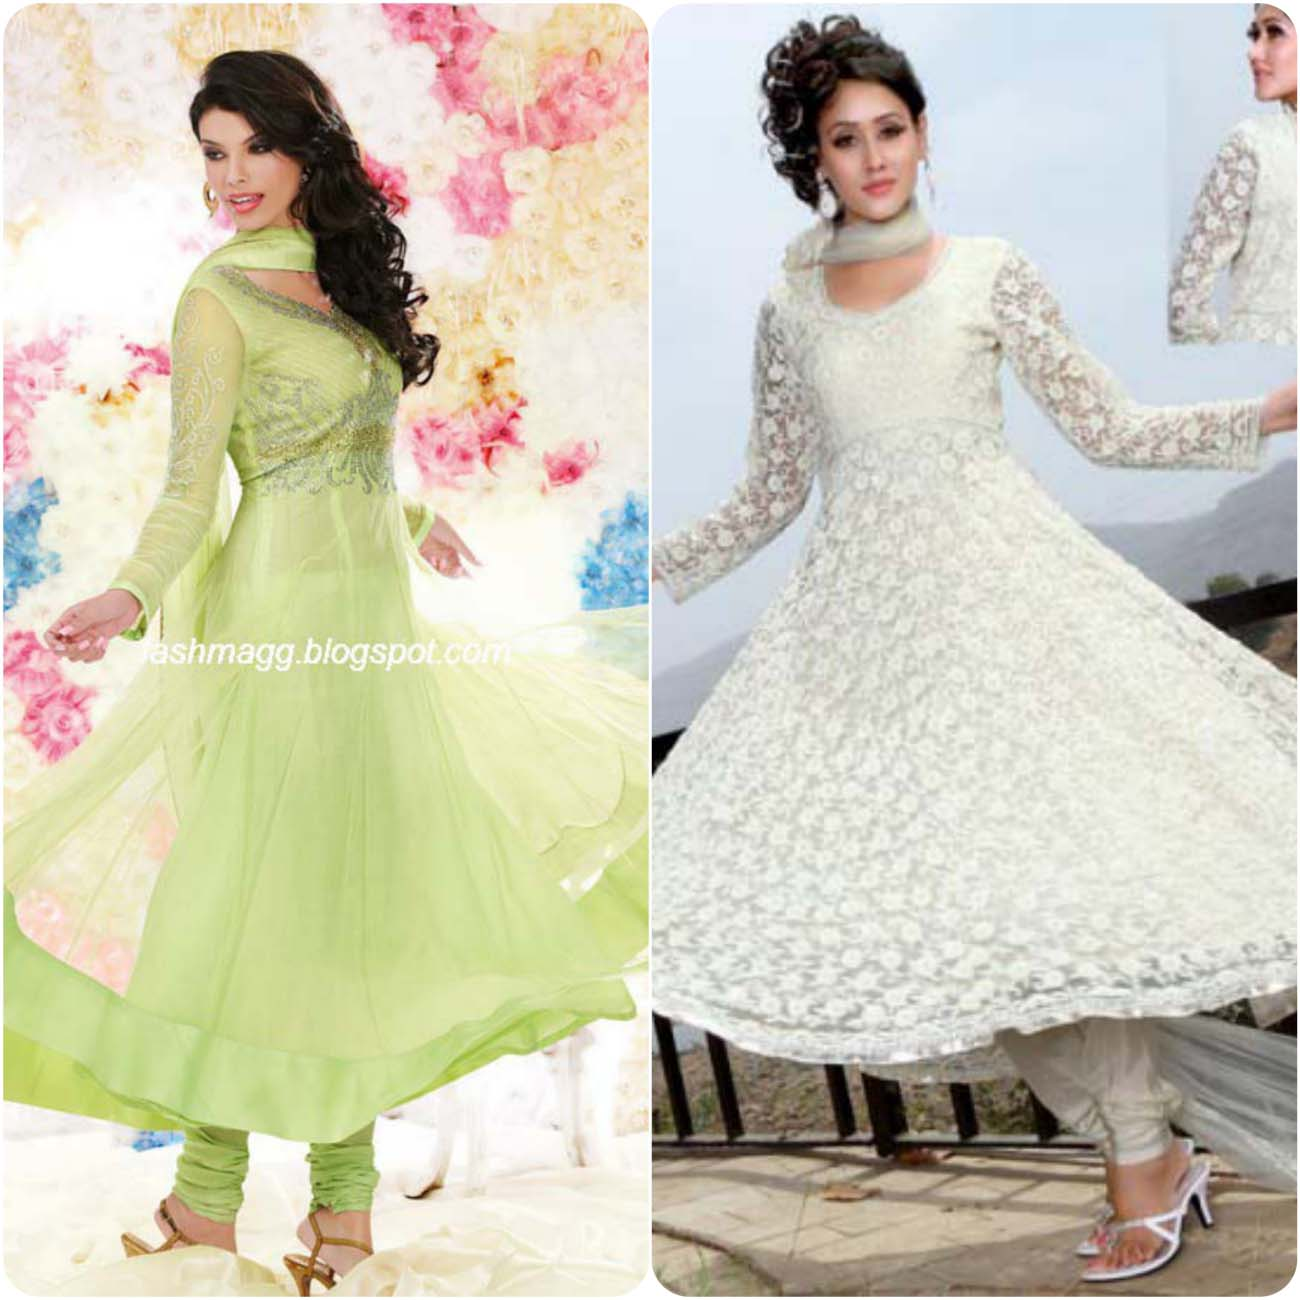 Umbrella Frocks Dress Designs and Styles Collection 2016-2017....styloplanet (8)